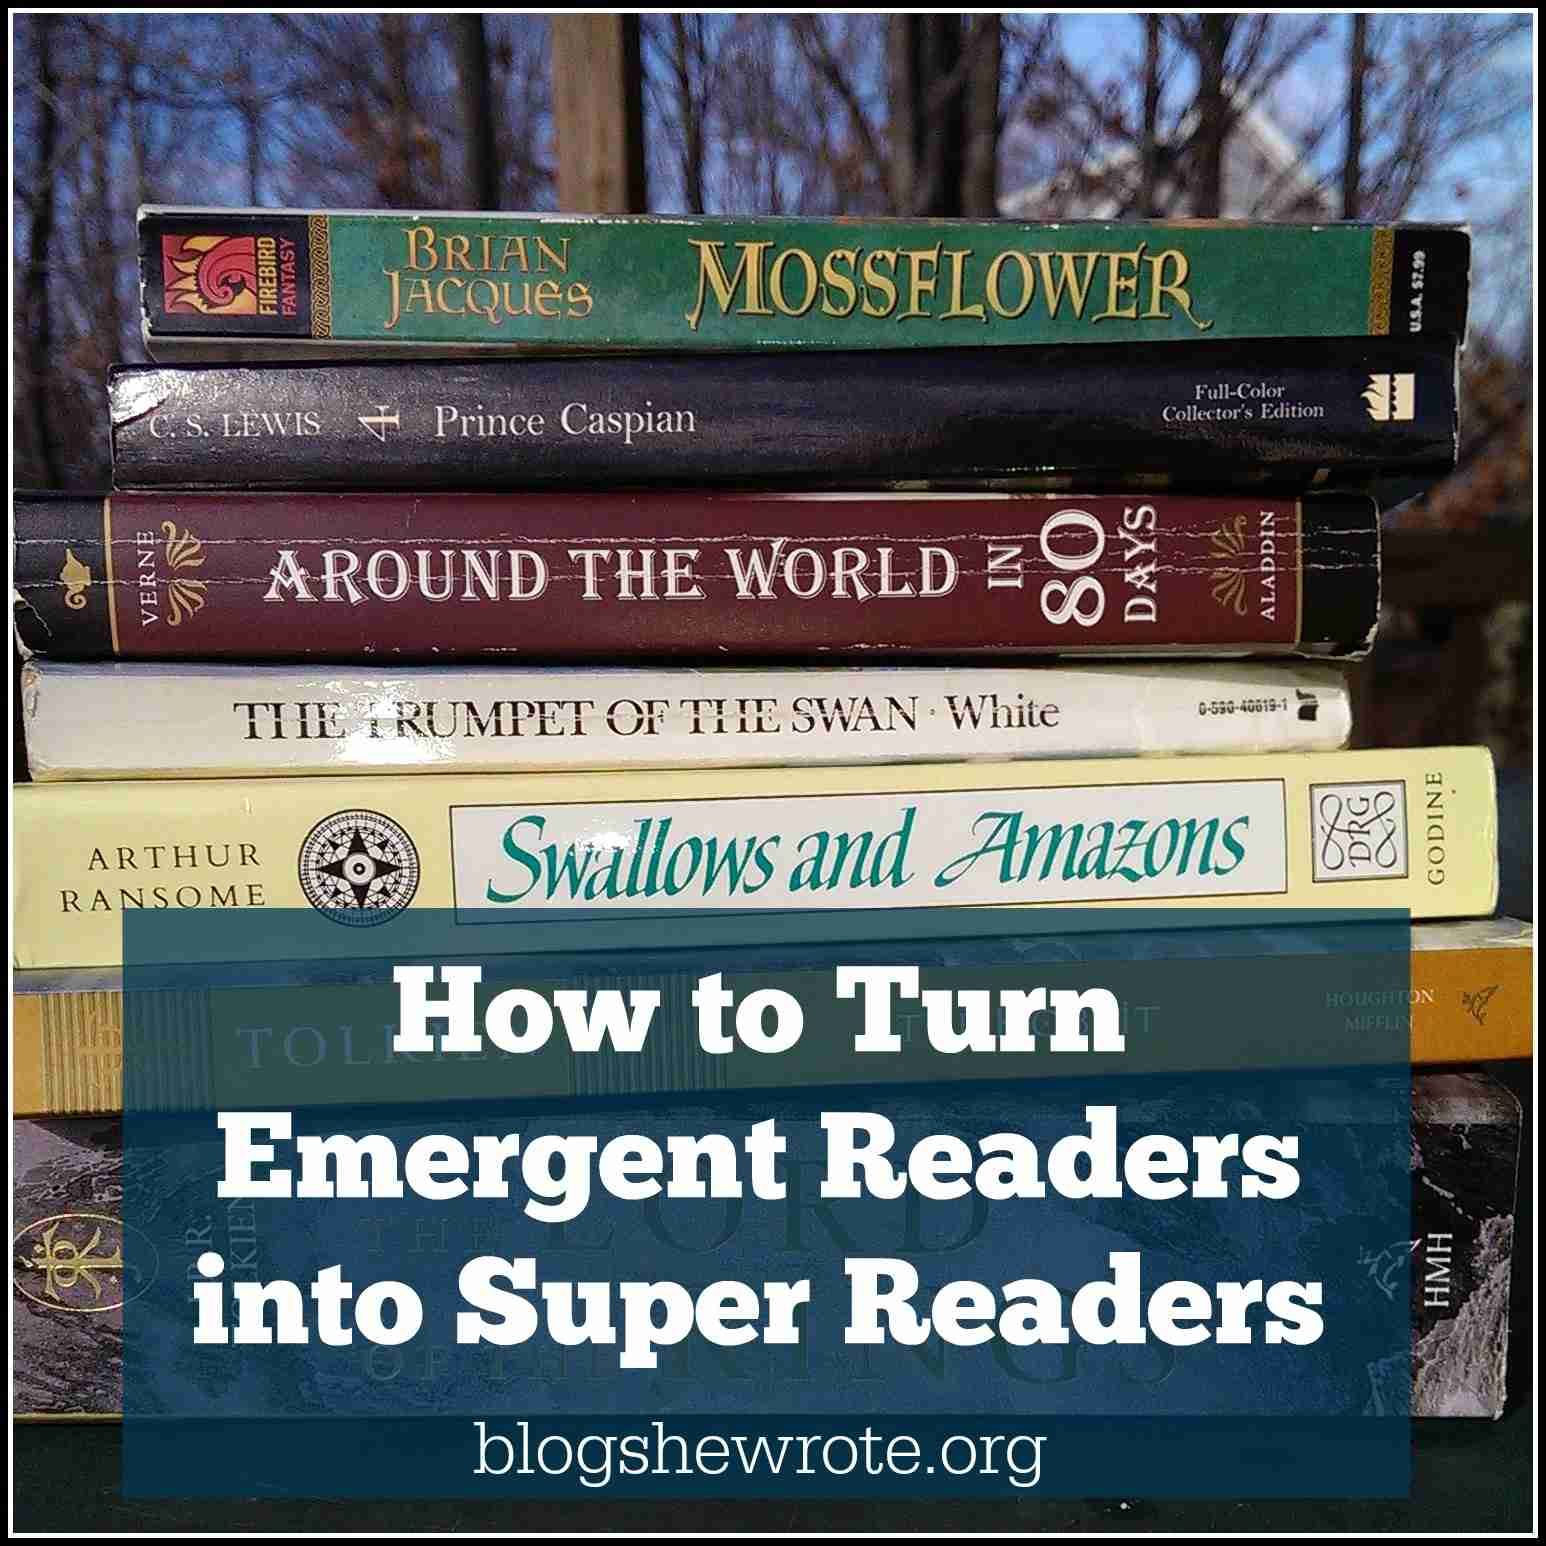 How to Turn Emergent Readers into Super Readers - Blog, She